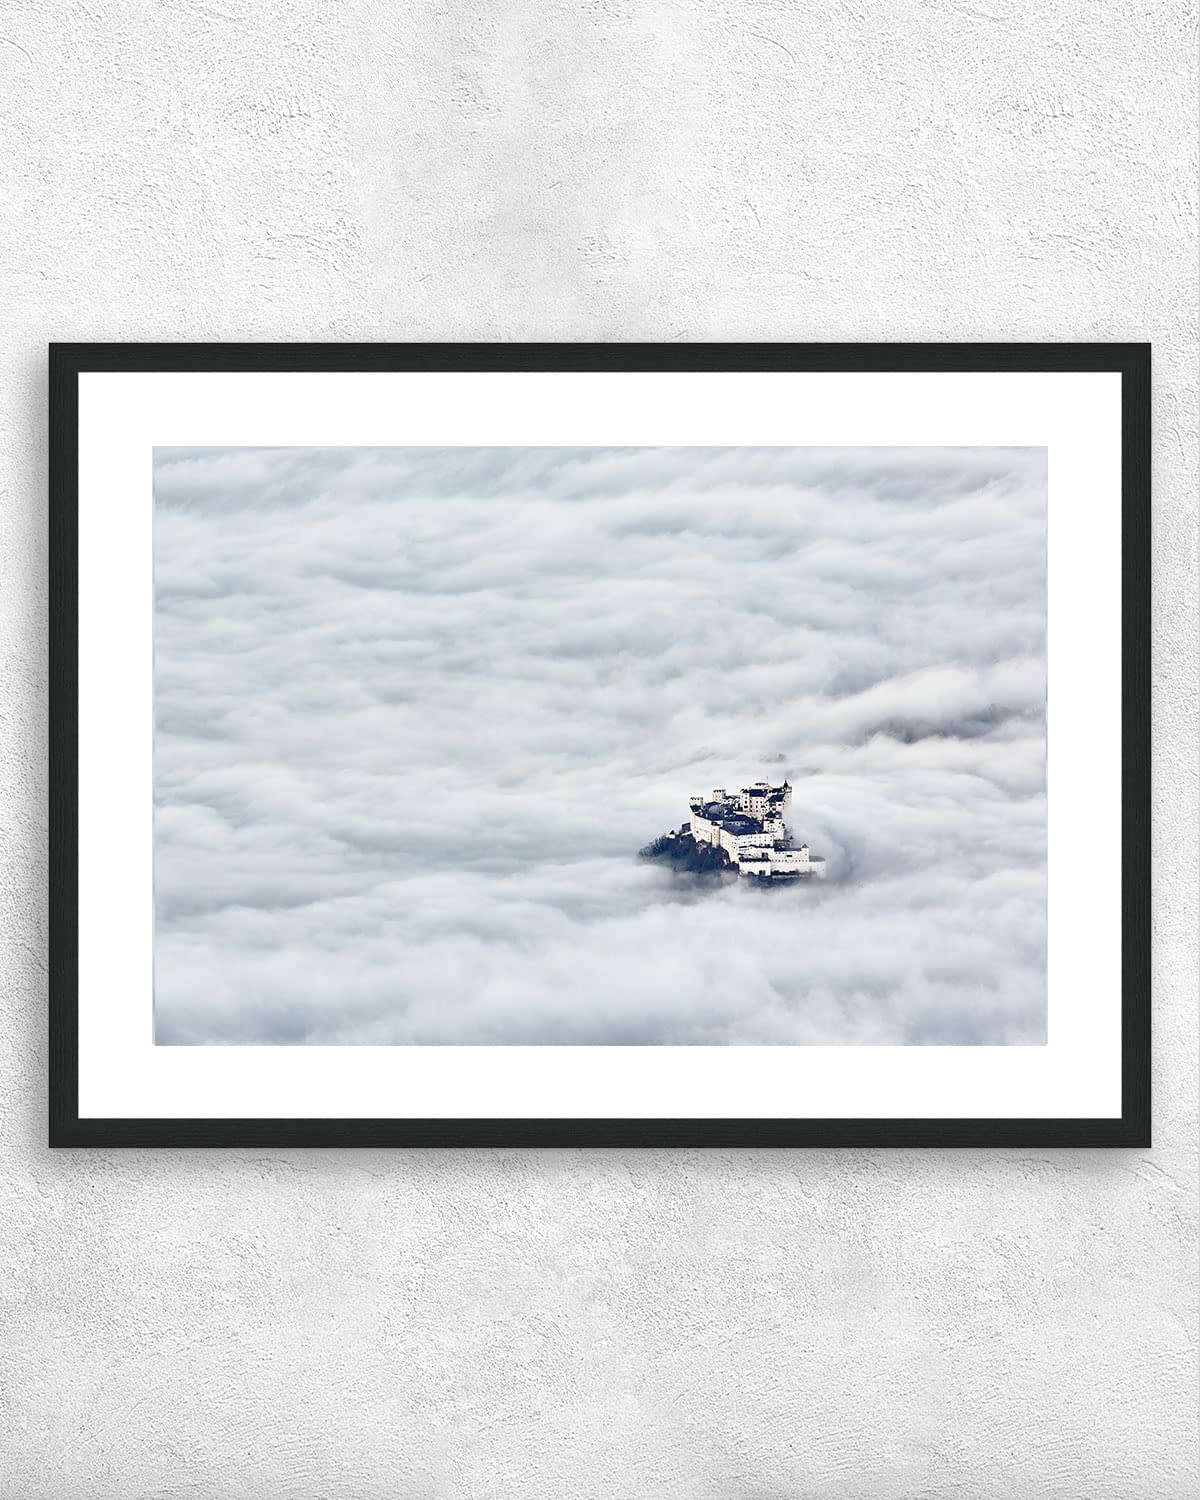 Wrapped-in-the-fog-NZUP-016-00